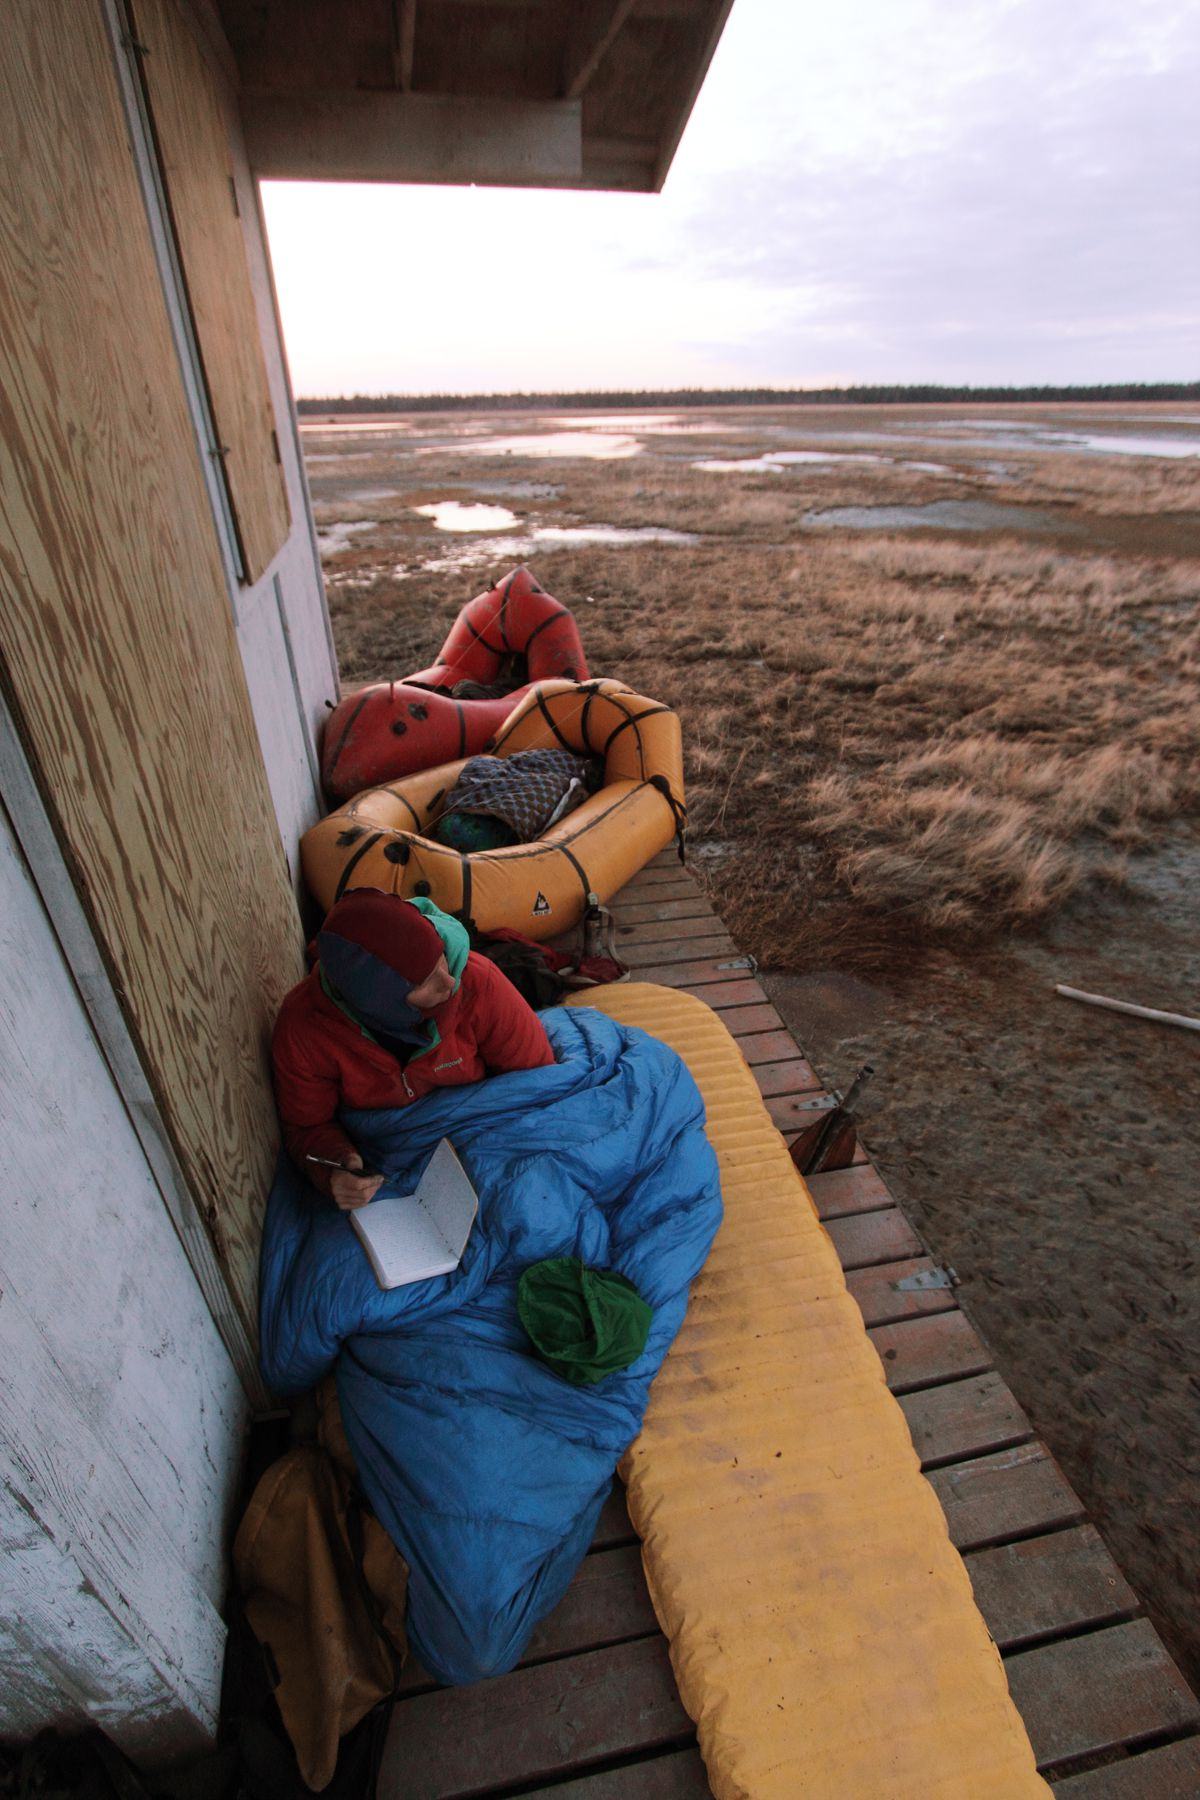 Erin McKittrick writes in her journal from the porch of a duck shack on the Susitna Flats in Southcentral Alaska in May of 2013. The shack was locked, but the trekkersmade use of its porch for an unorthodox campsite. (Photo by Ground Truth Trekking)